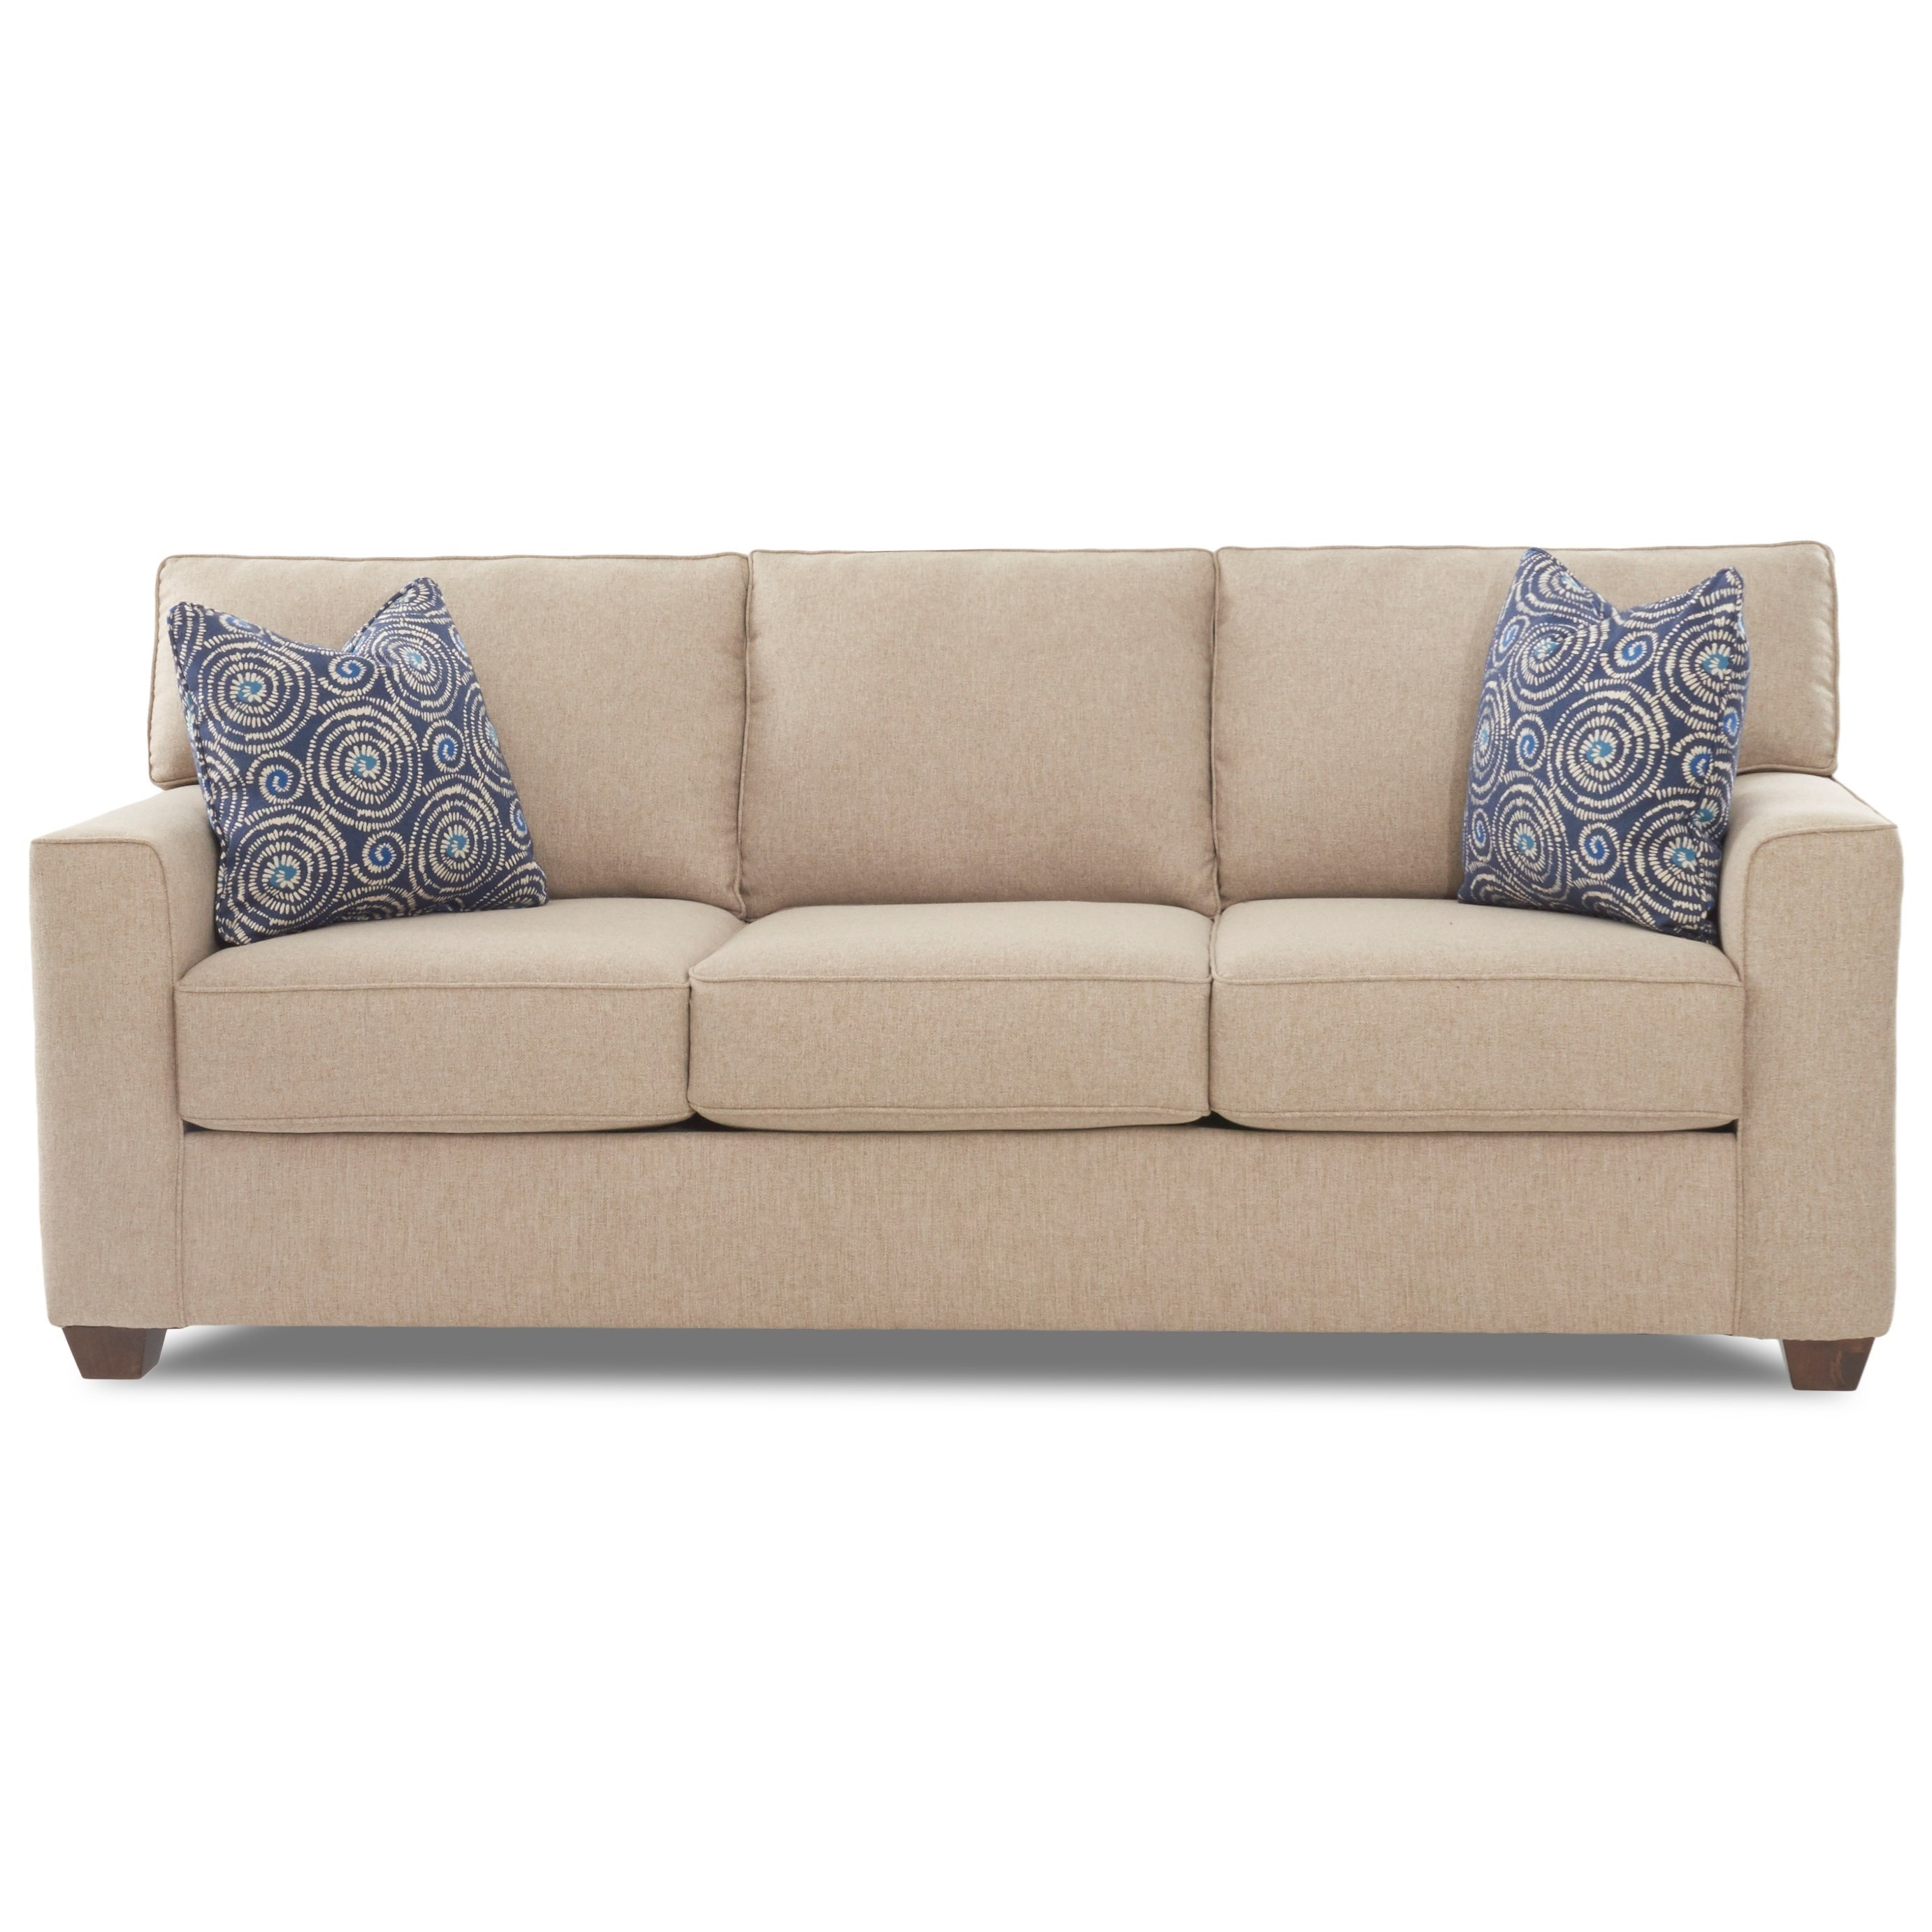 Contemporary 3-Seat Sleeper Sofa with Air Coil Mattress